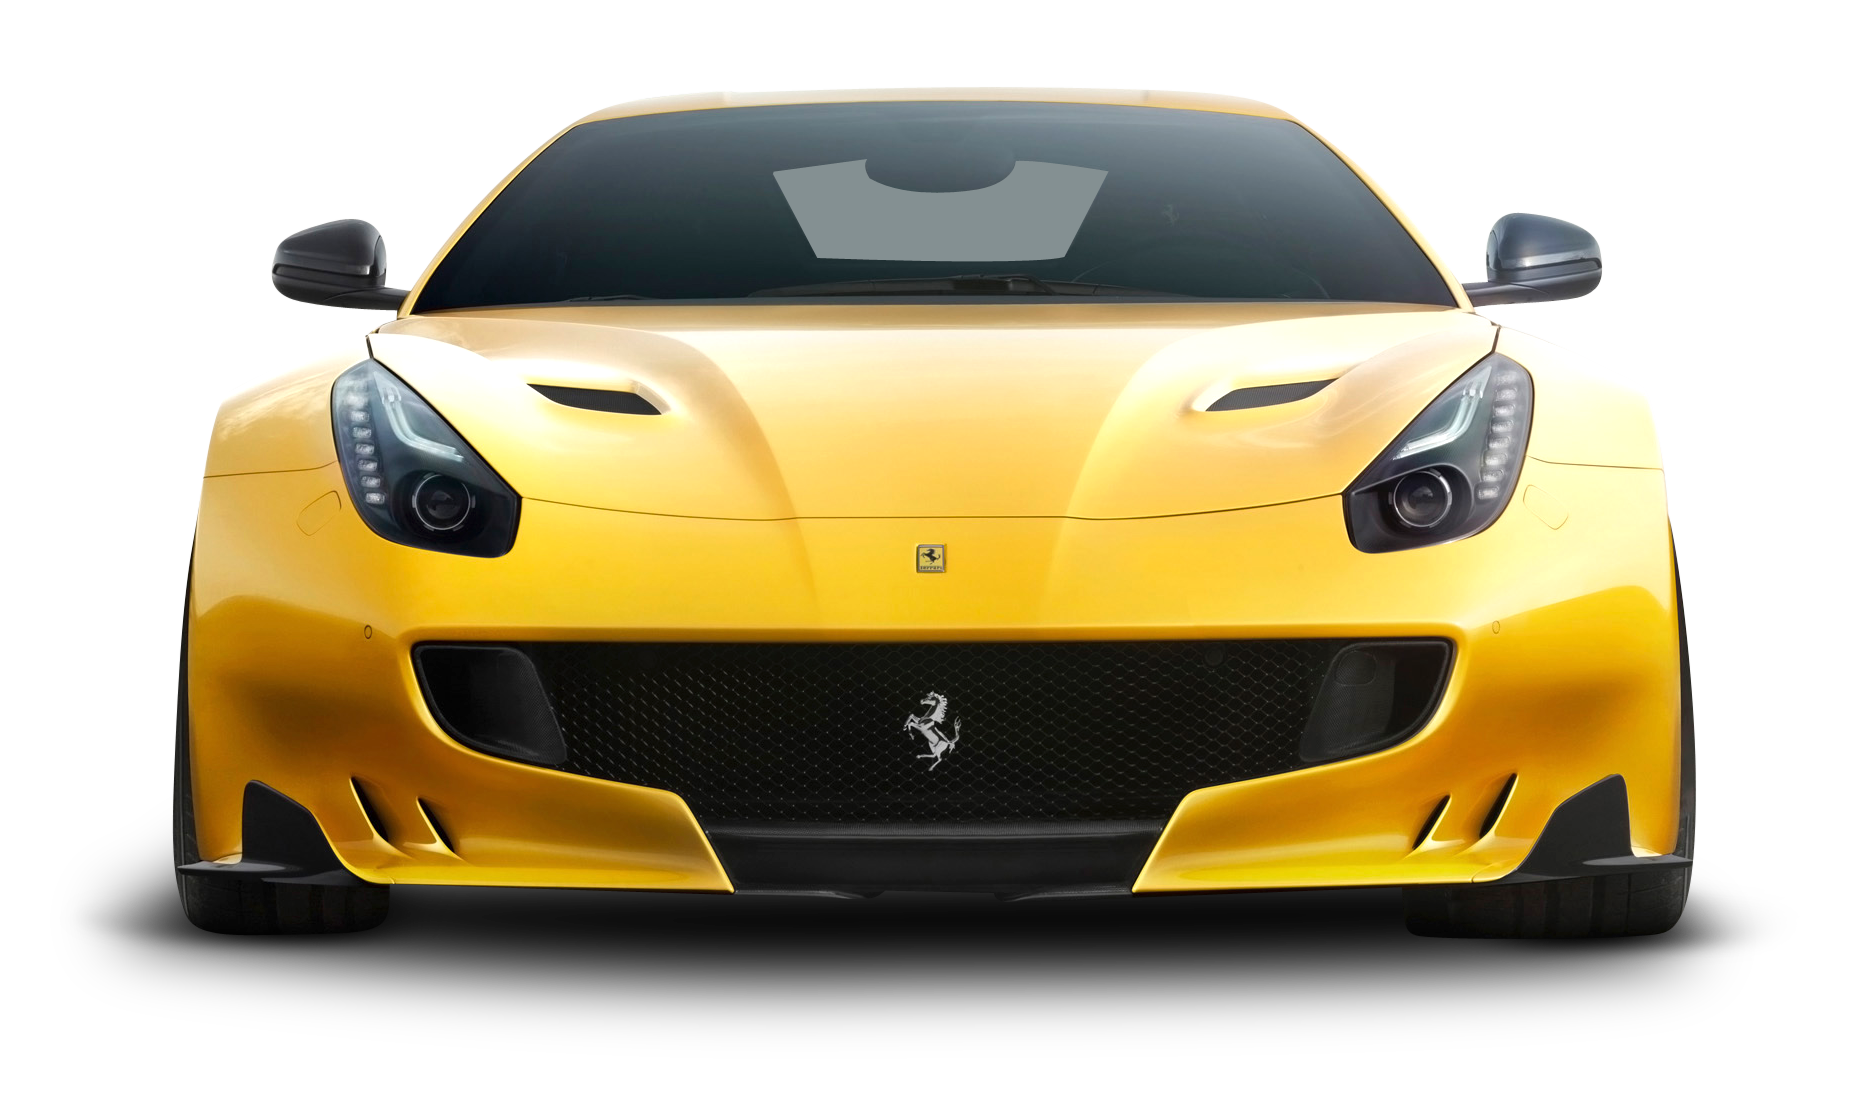 Download Yellow Ferrari F12tdf Car Front Png Image For Free